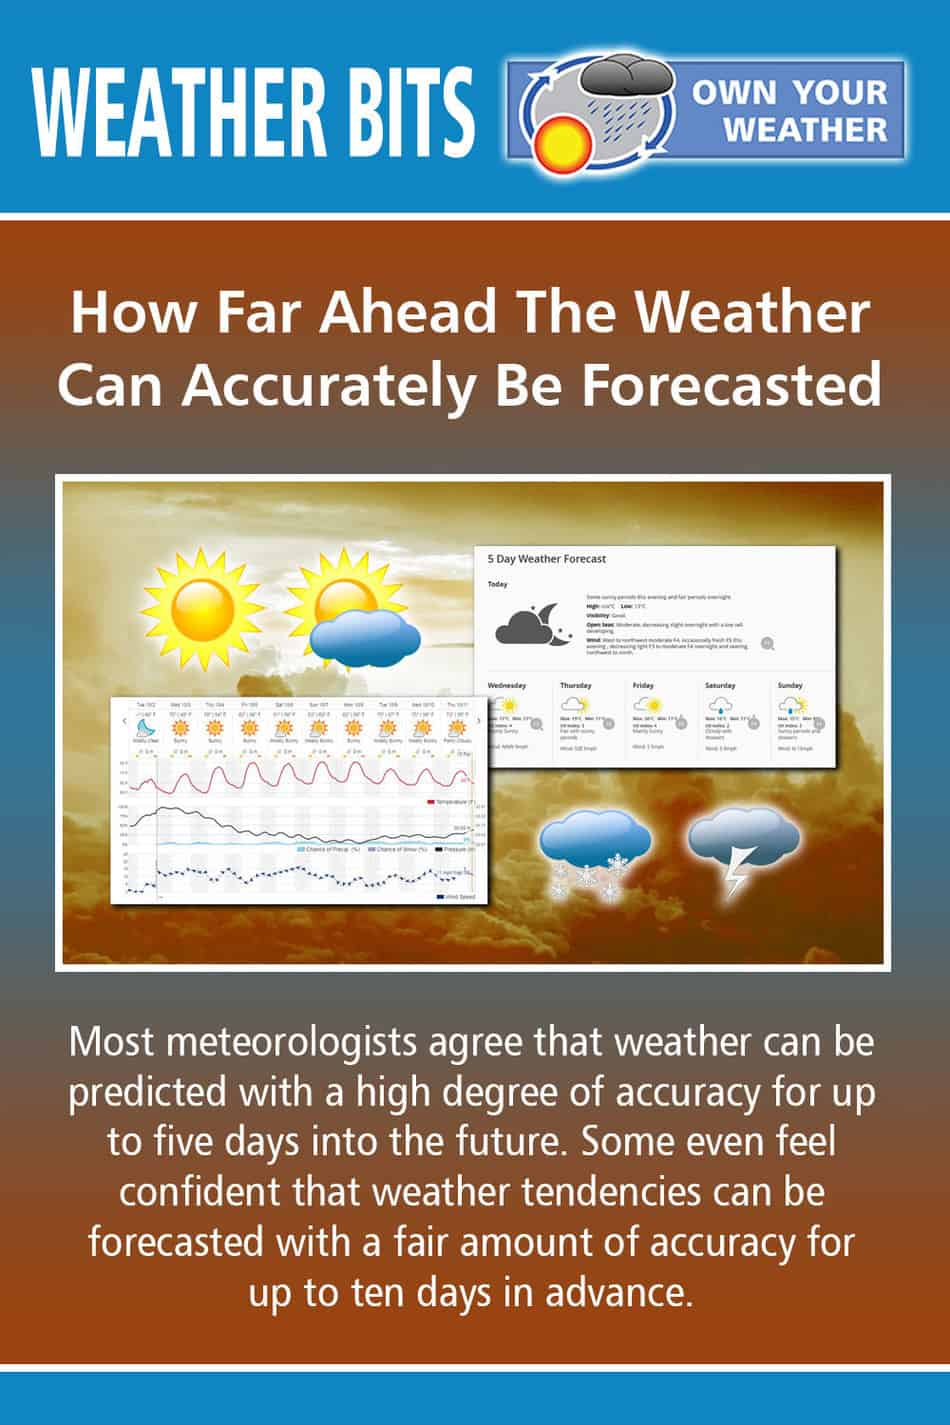 How Far Ahead The Weather Can Accurately Be Forecasted